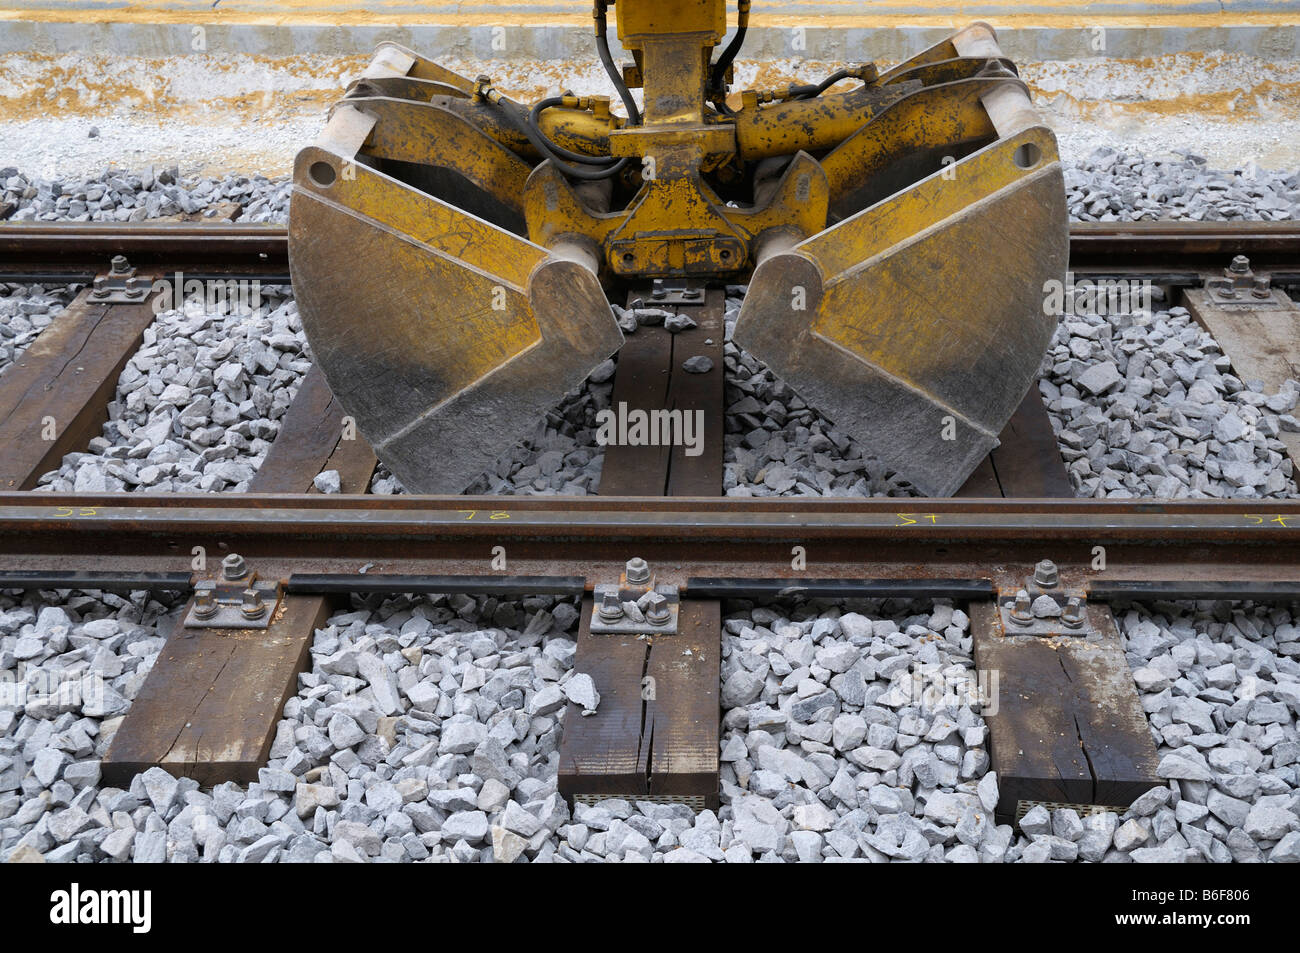 Track construction work, excavator shovel in track bed - Stock Image